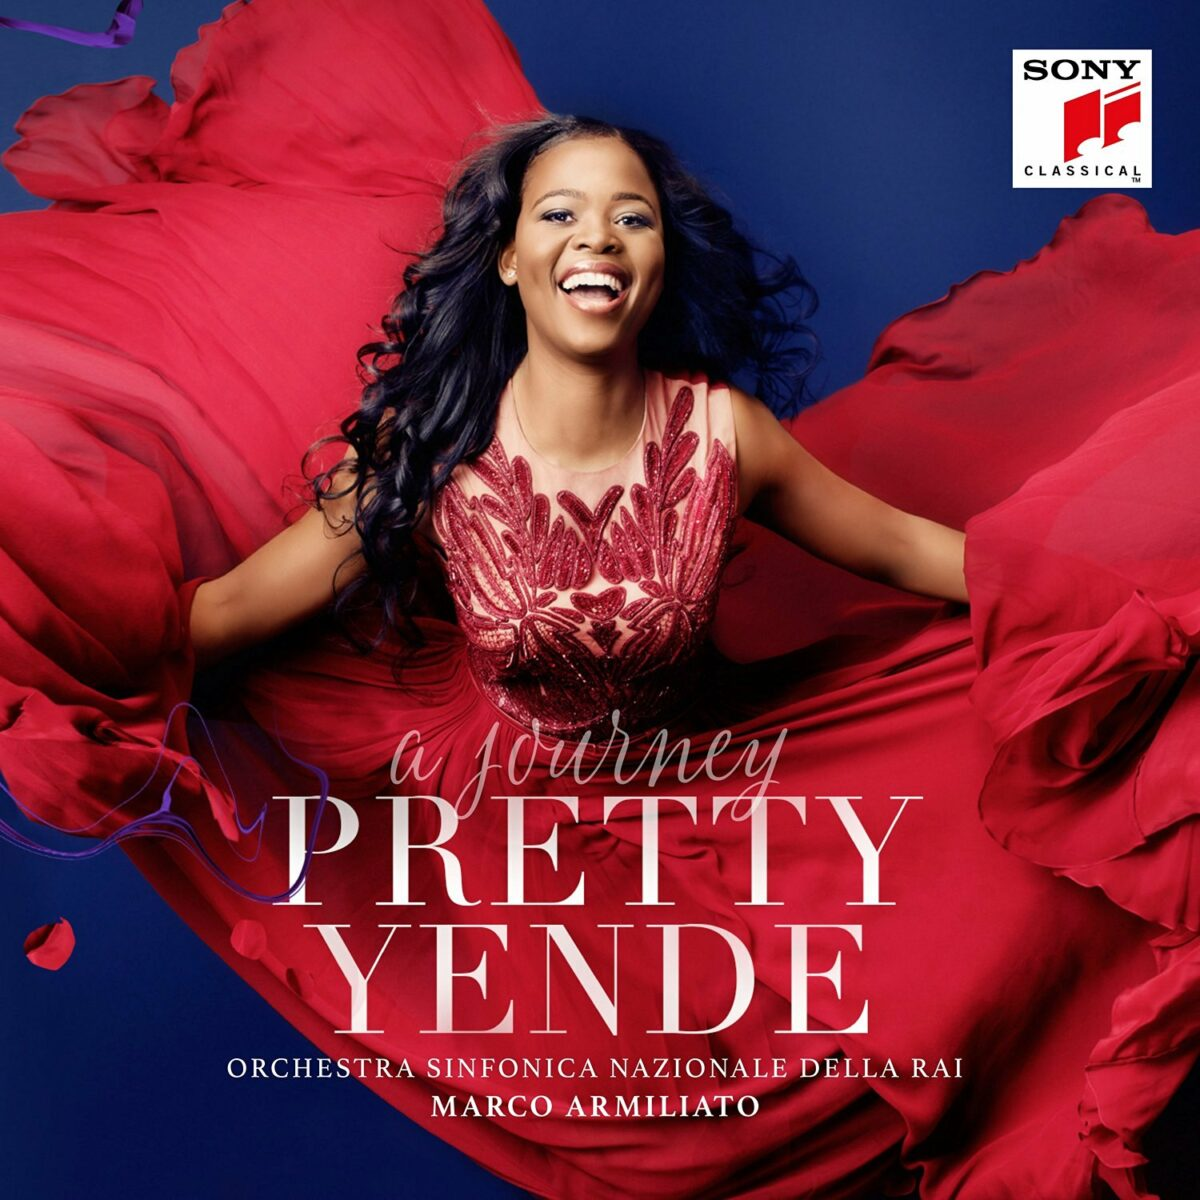 South Africa's Pretty Yende debuts new Opera release